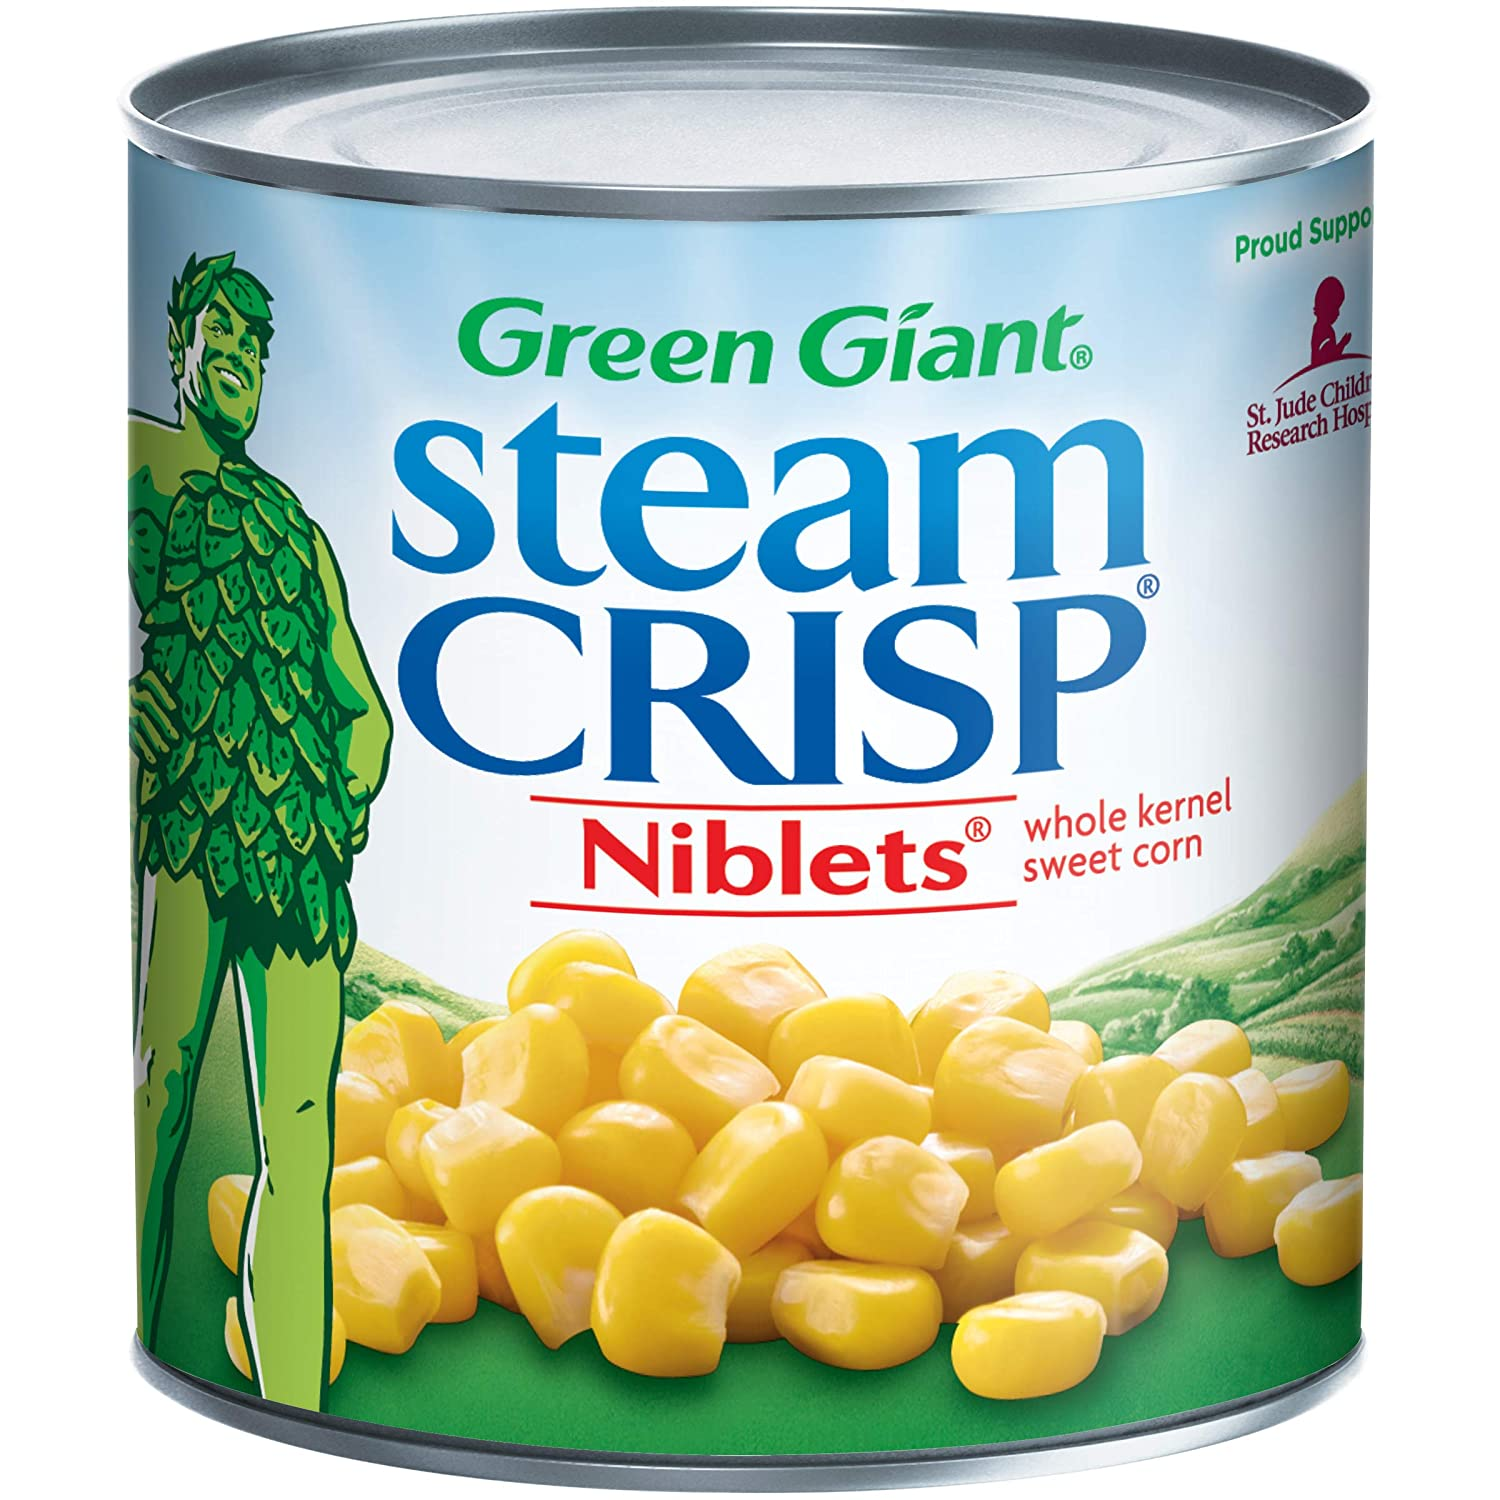 Green Giant Whole Kernel Deluxe Bombing free shipping Sweet 11 Corn Can Niblets Ounce